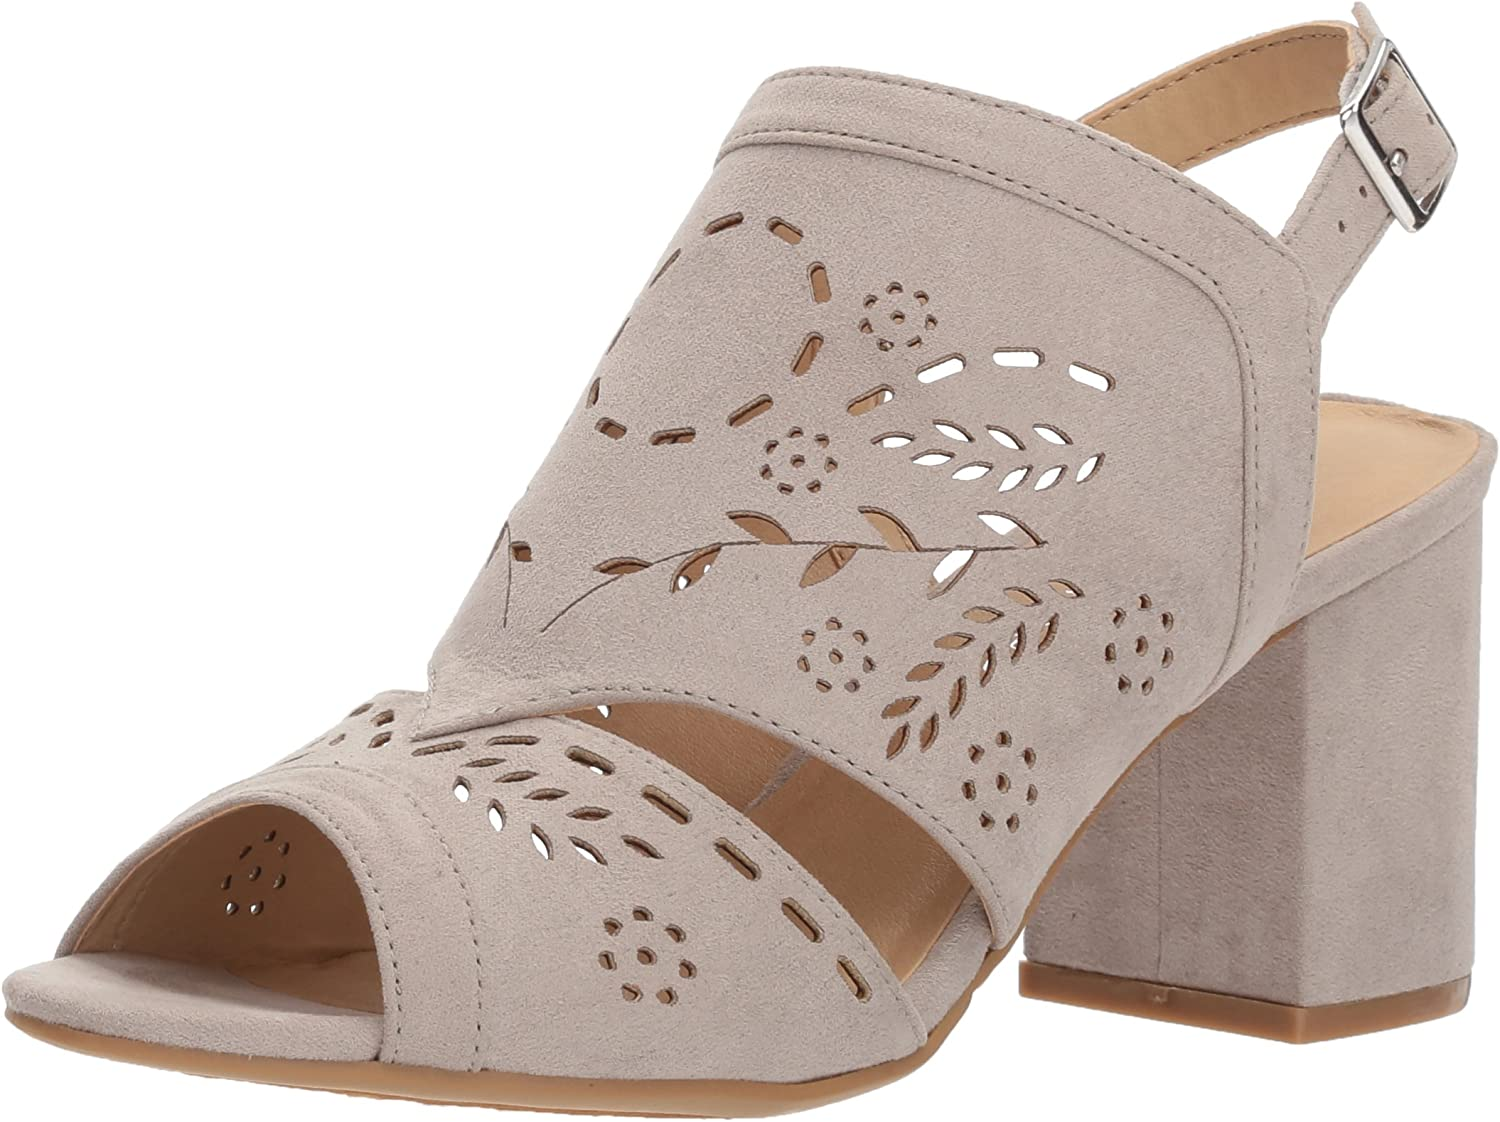 CL by Chinese Laundry Women's Joanne Heeled Sandal